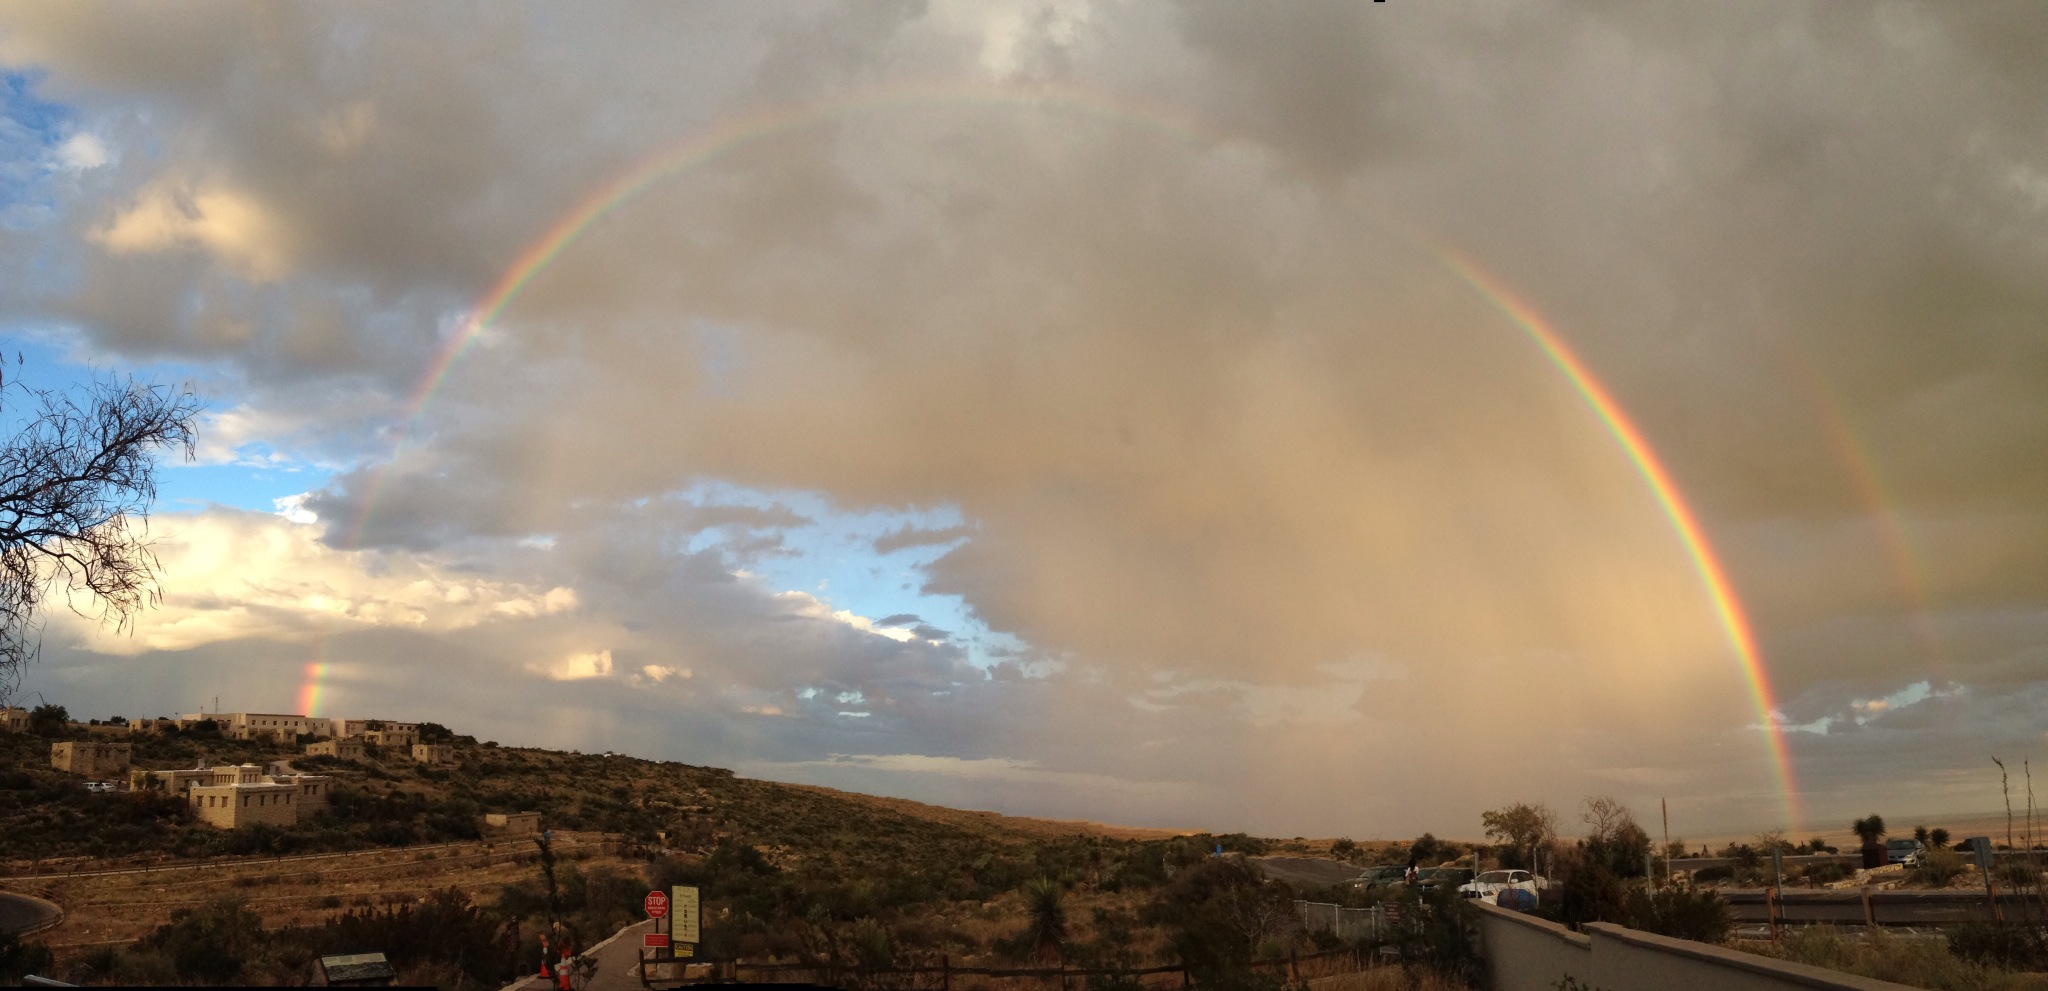 A Rainbow Behind the Visitor Center